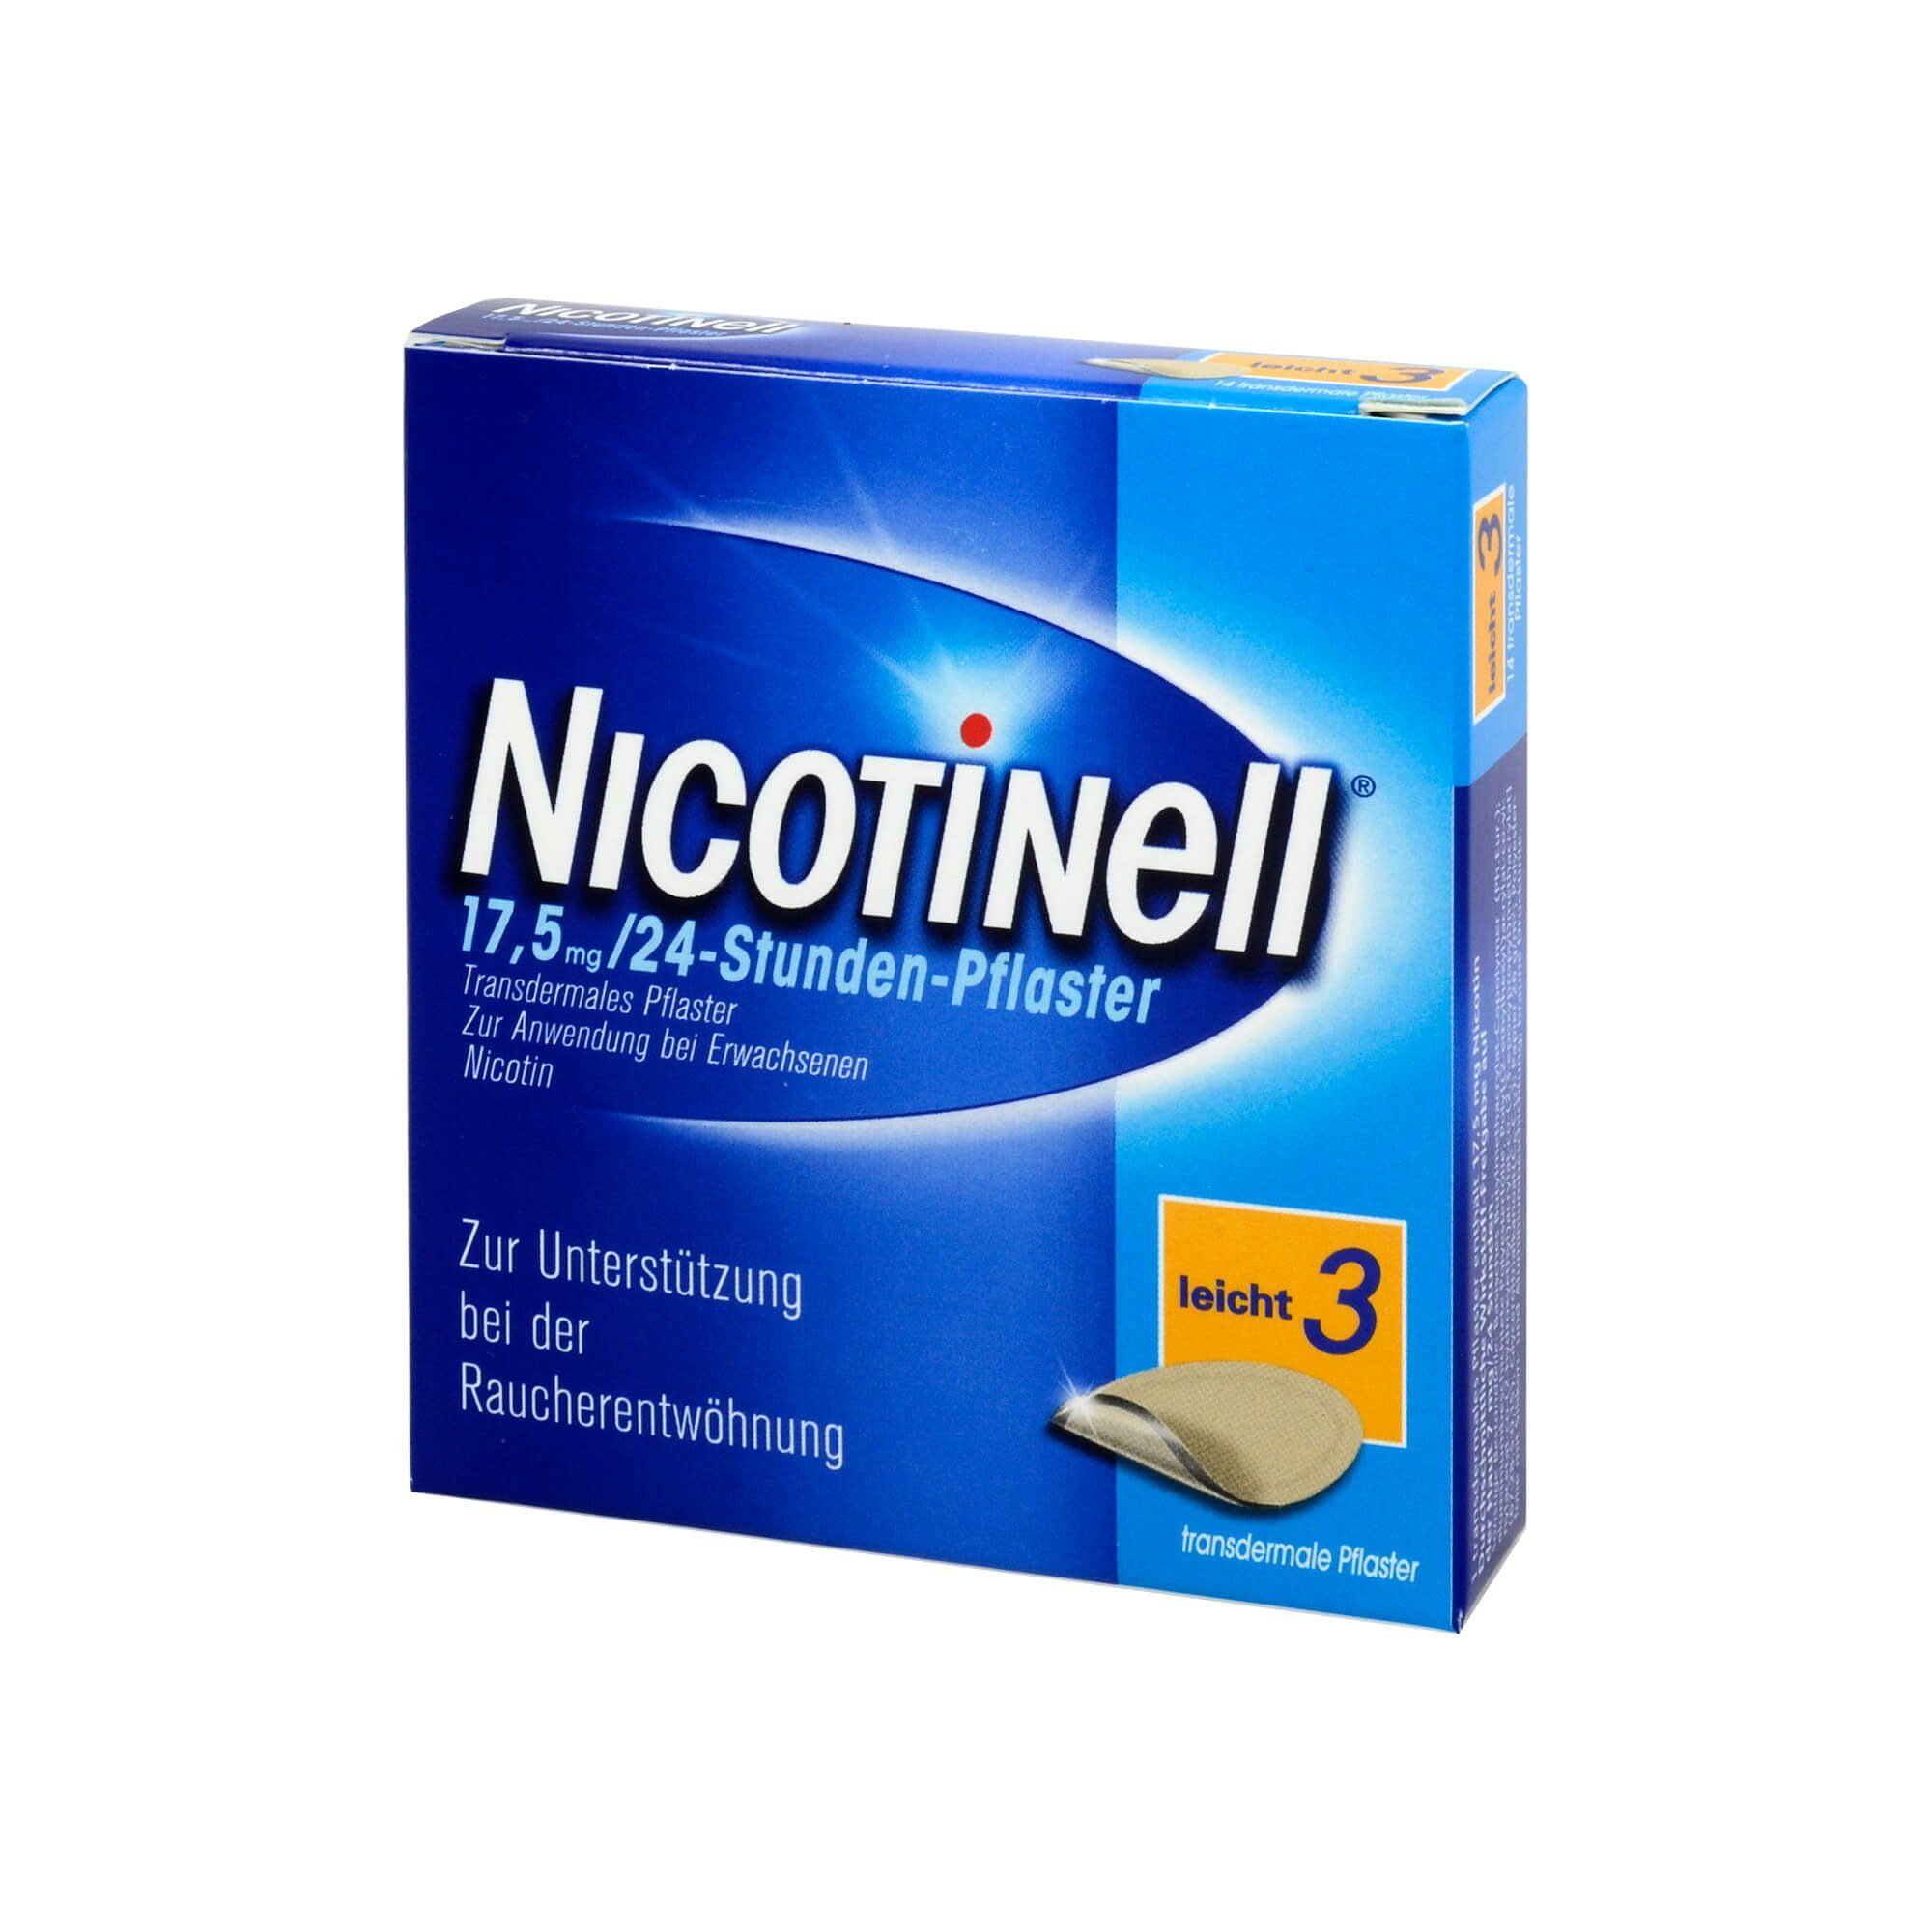 Nicotinell 17,5 mg 24 Stunden Pflaster, 21 St